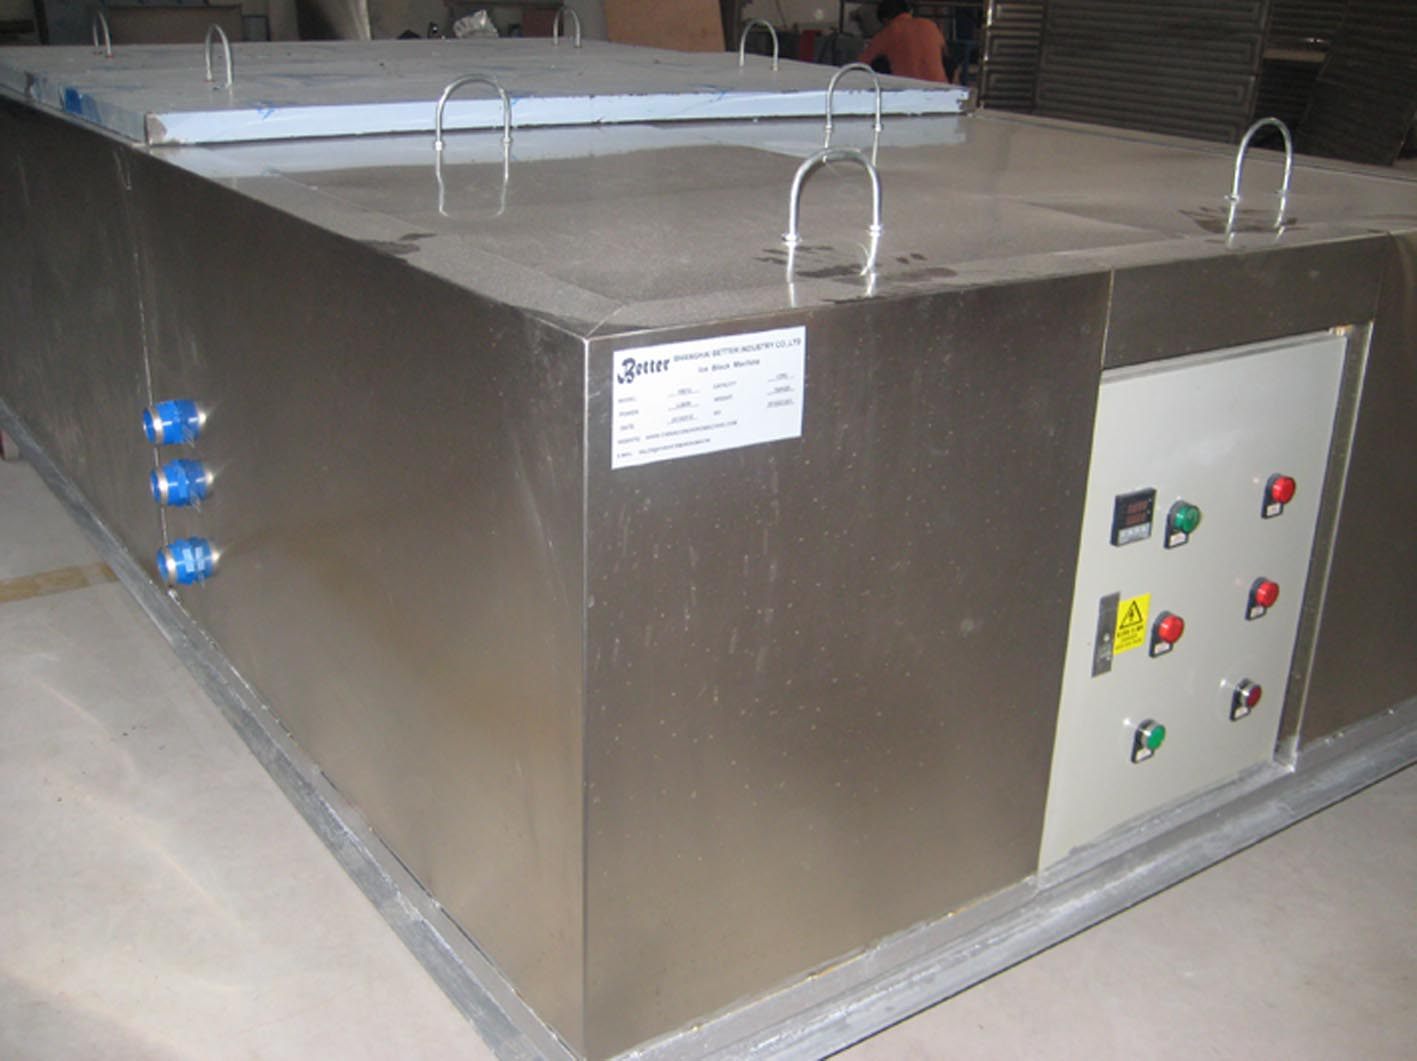 China Supplier Of Ice Block Mahine Business To Business